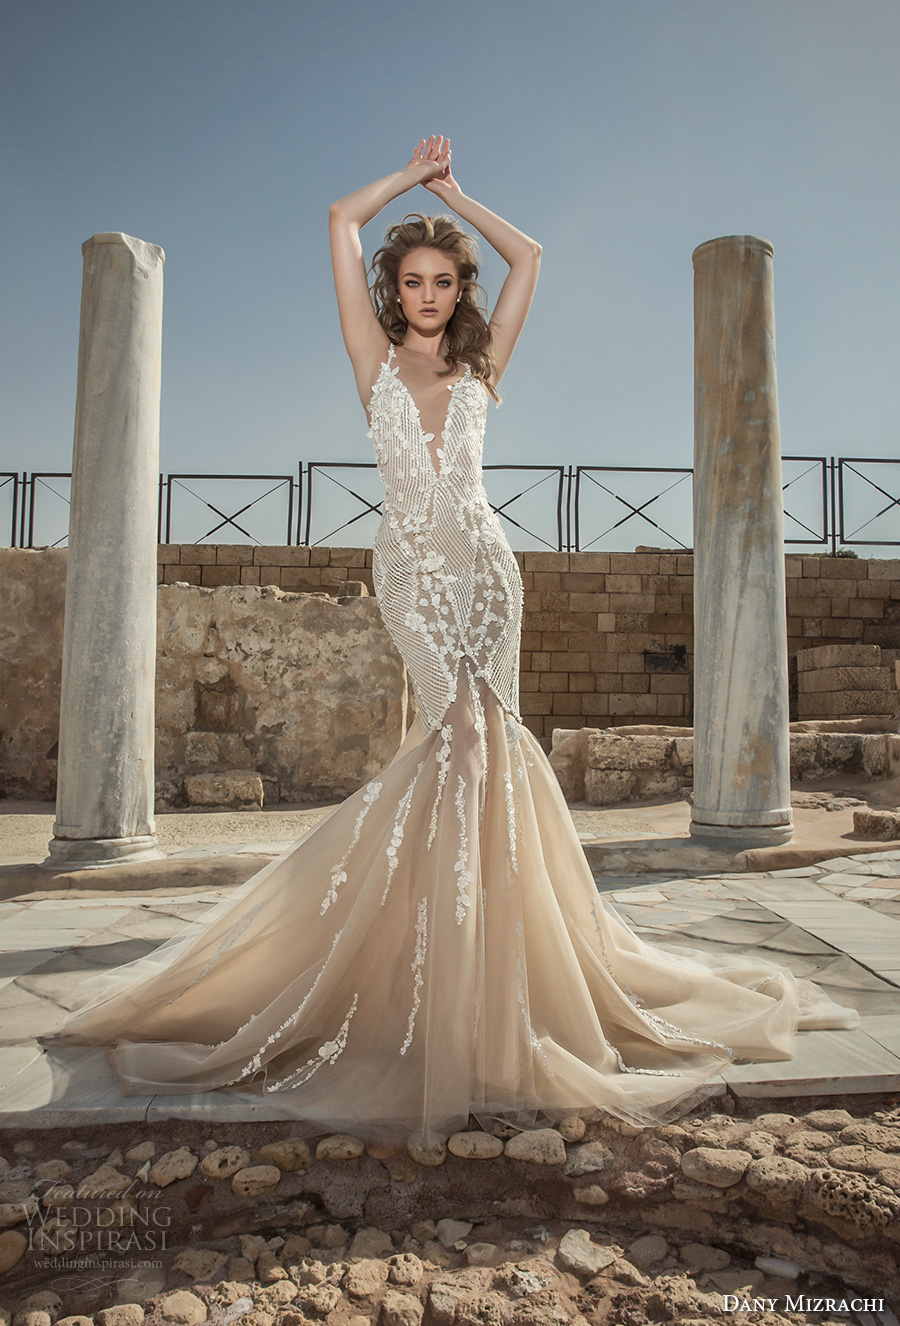 dany mizrachi 2018 bridal sleeveless halter neck deep plunging sweetheart neckline heavily embellished bodice elegant champagne color mermaid wedding dress open back chapel train (11) mv